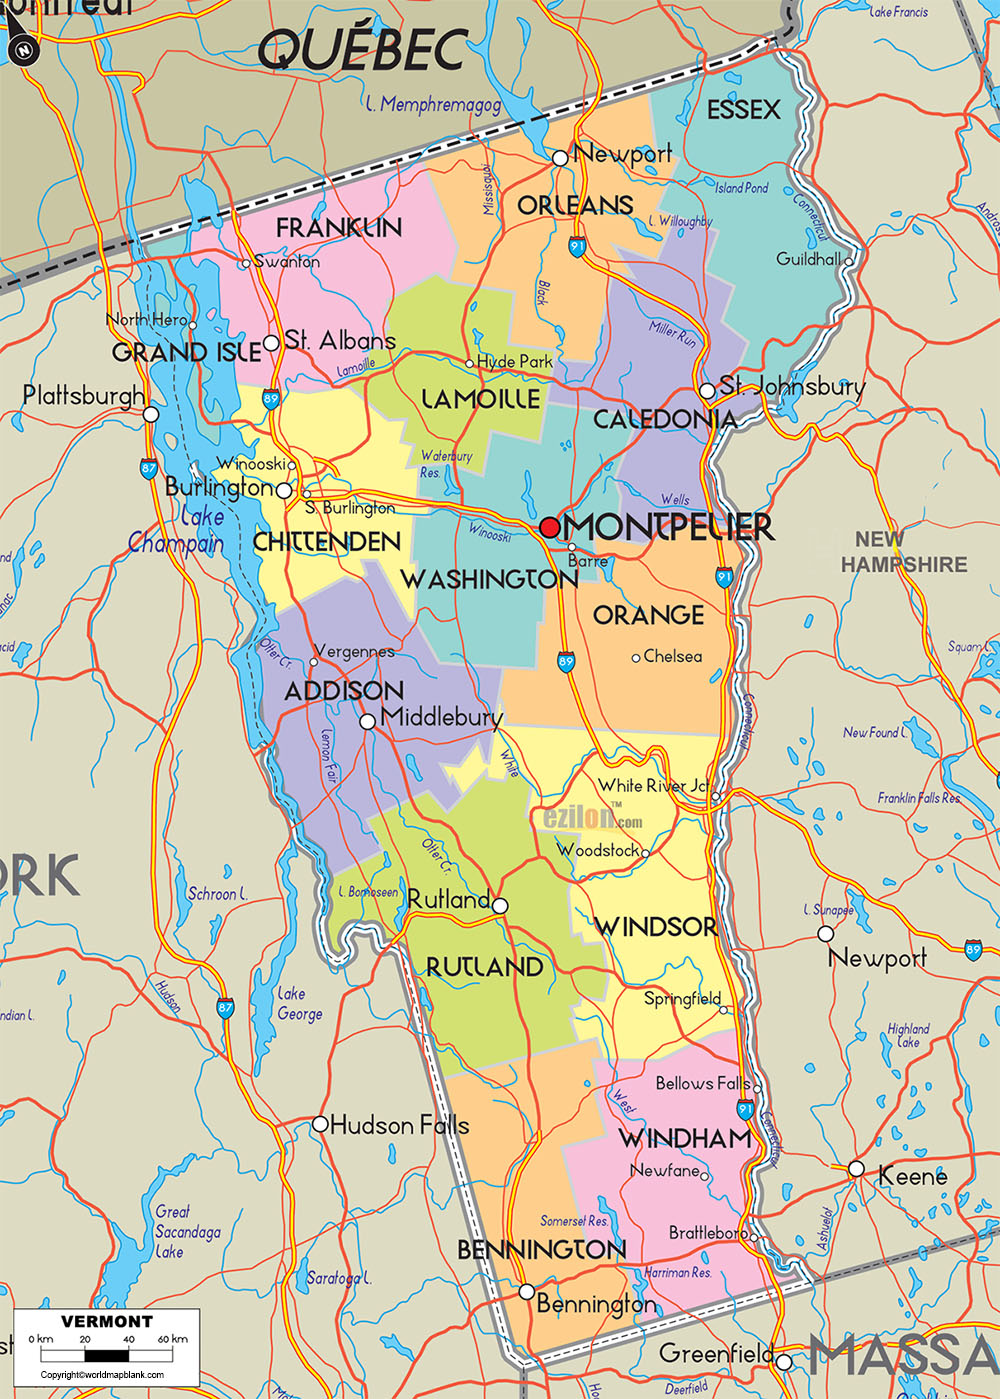 Labeled Map of Vermont